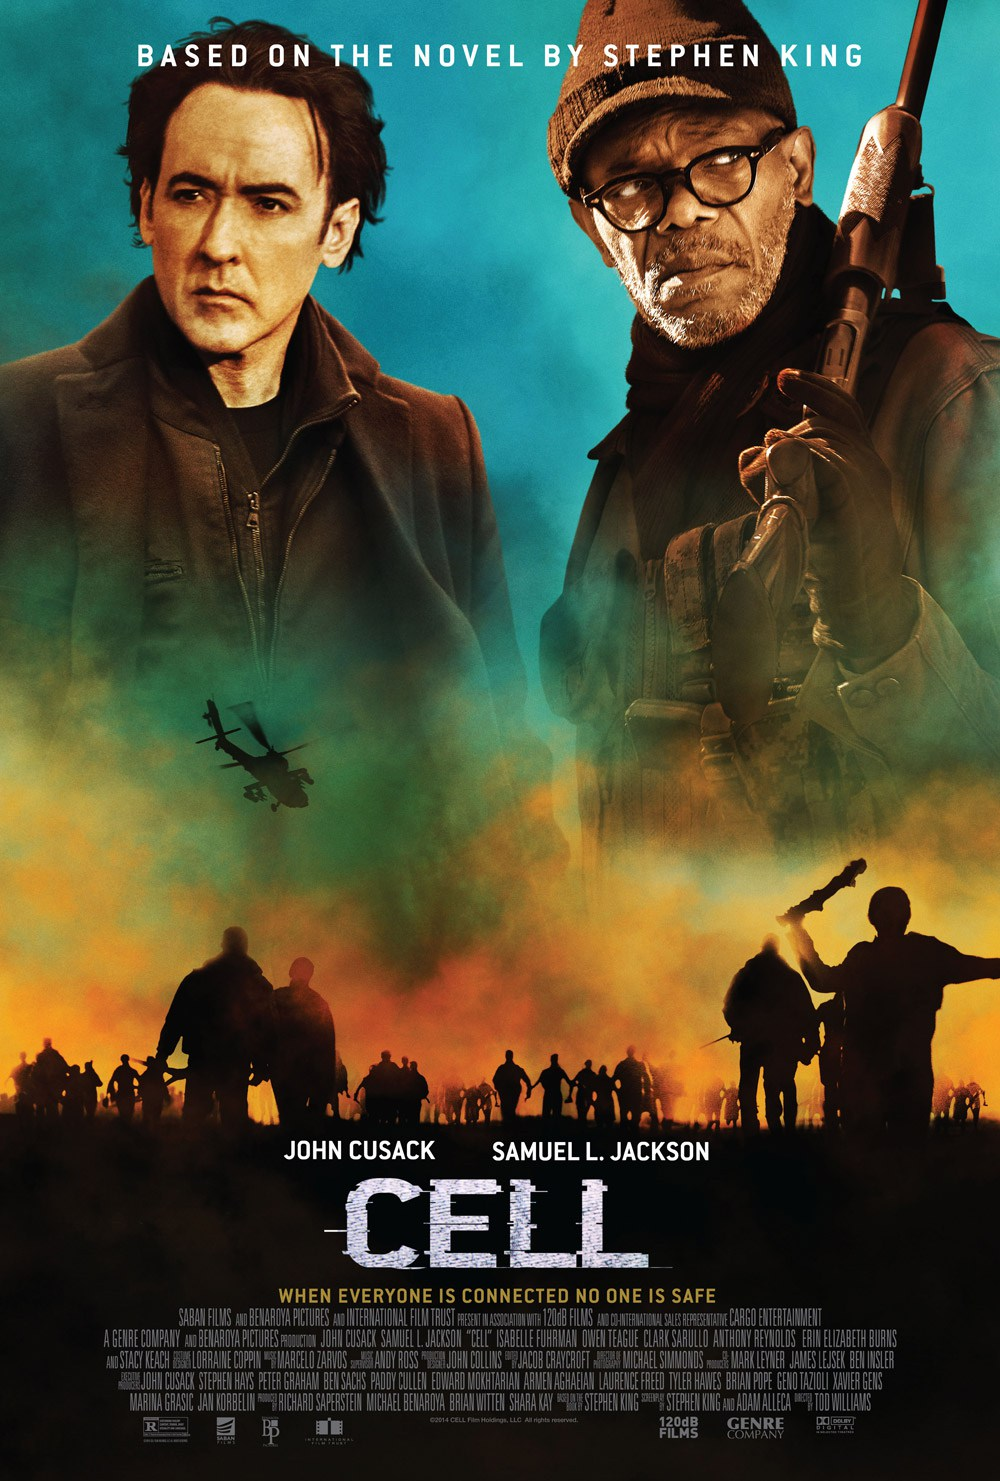 Witness The Outbreak In This Crazy First Look From THE CELL